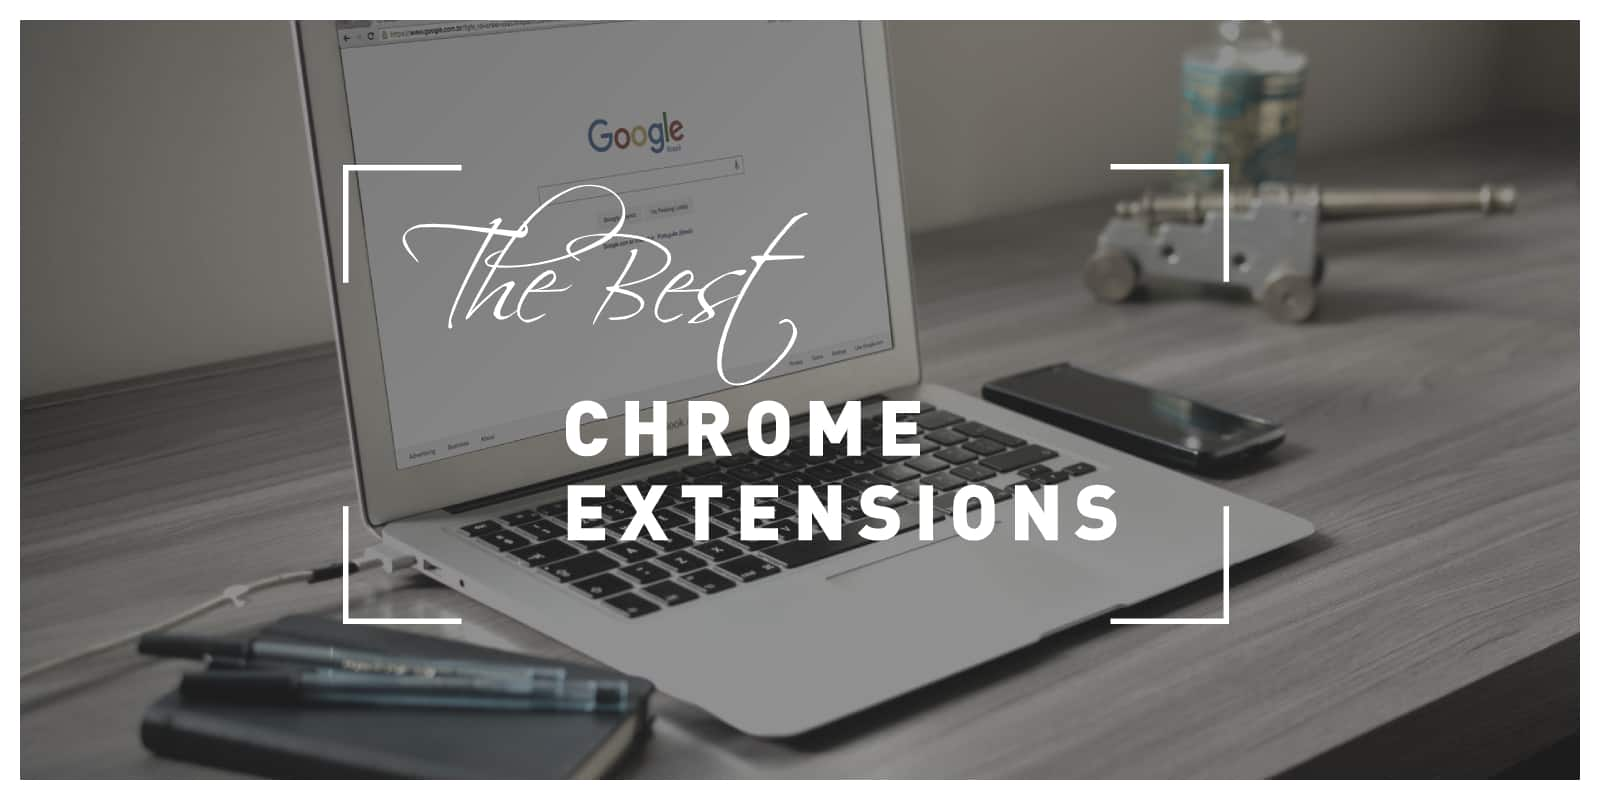 The best Google Chrome Extensions